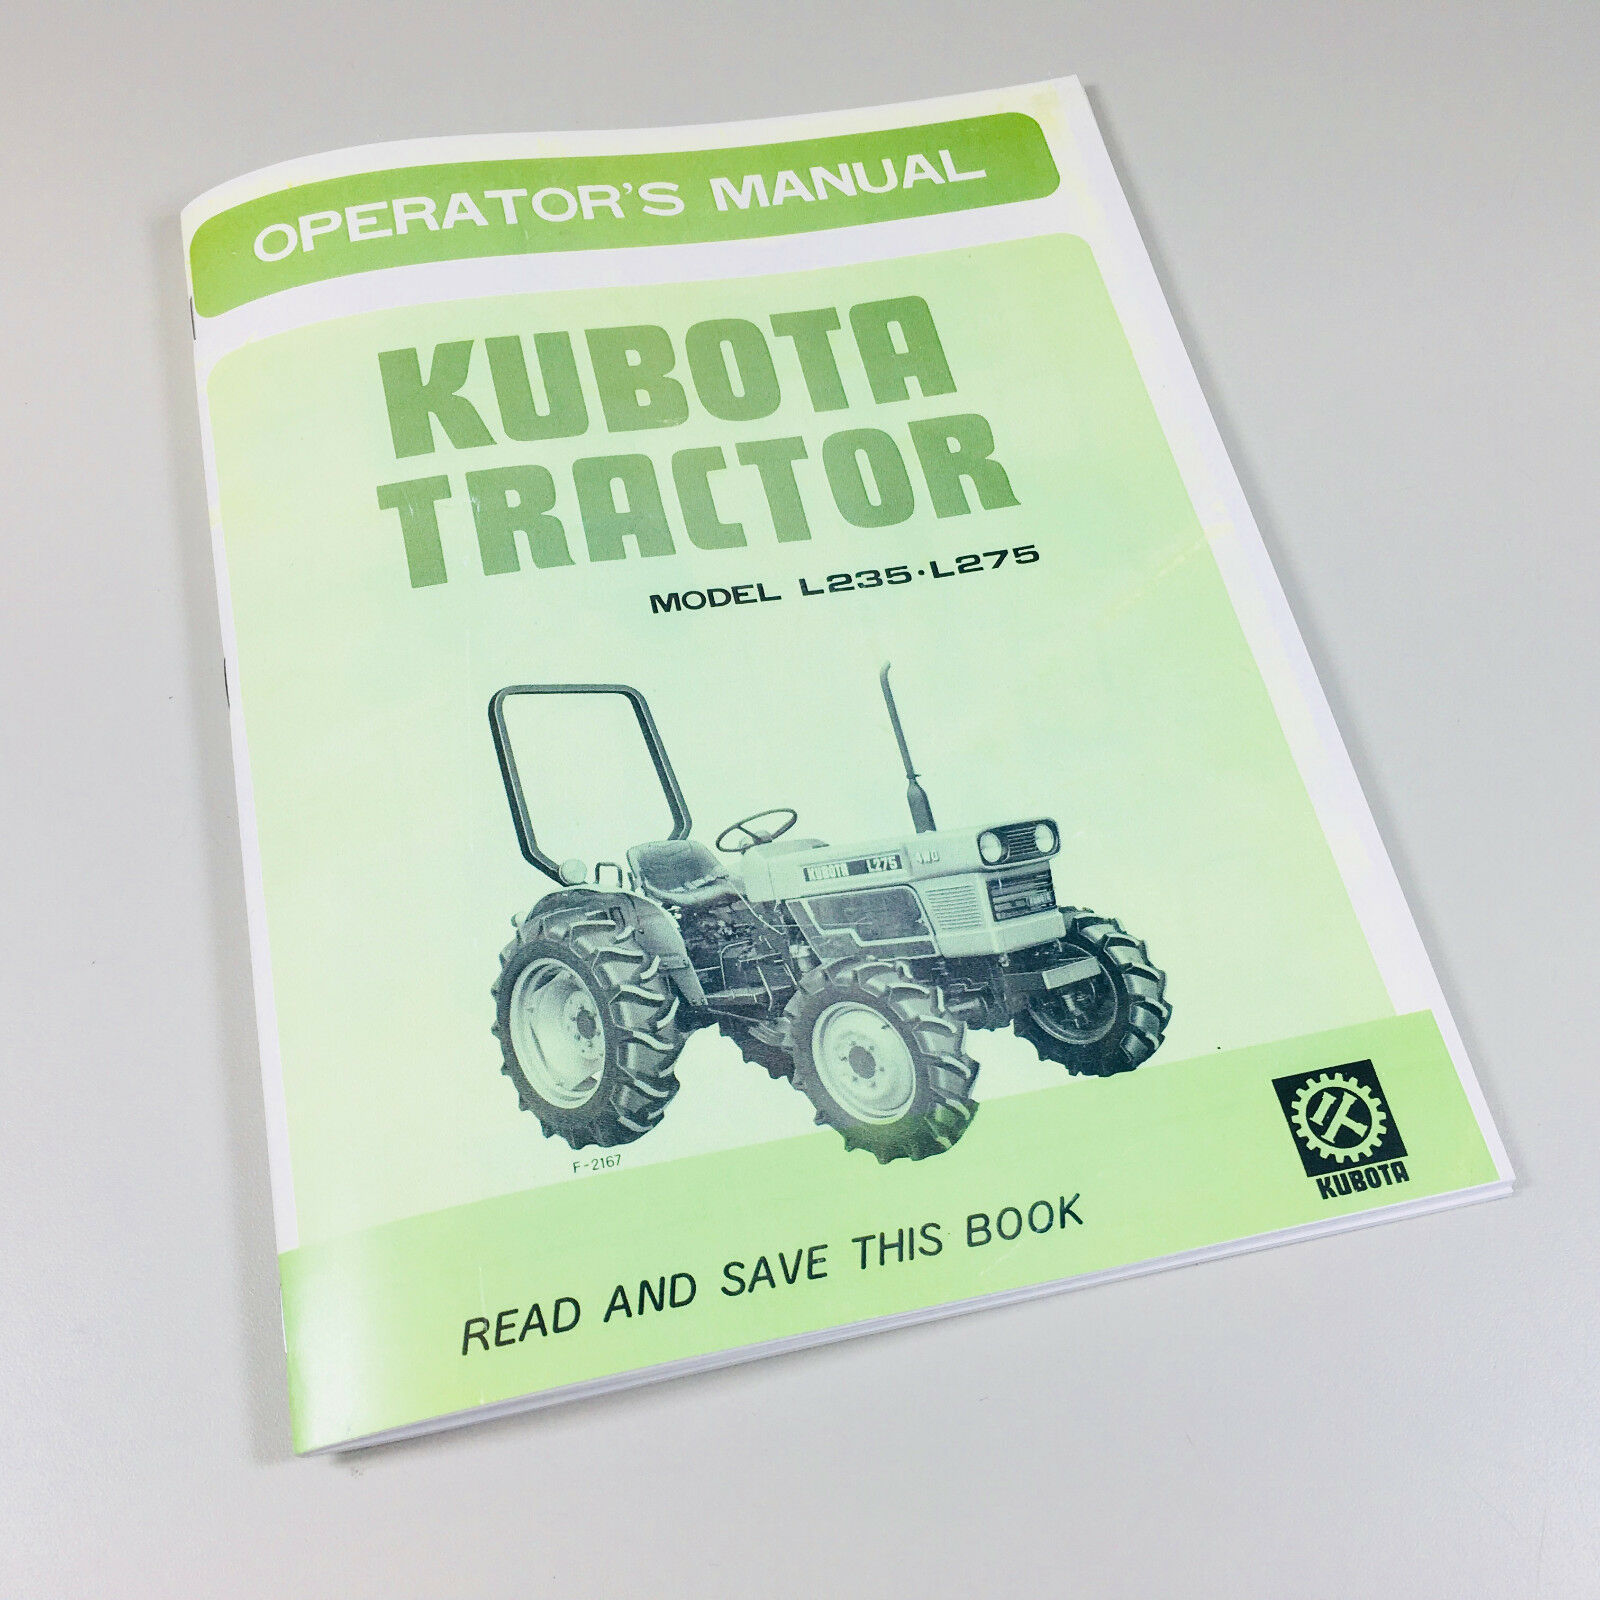 Kubota L235 L275 Tractors Operators Owners Manual 2Wd 4Wd Diesel Maintenance  1 of 7FREE Shipping ...